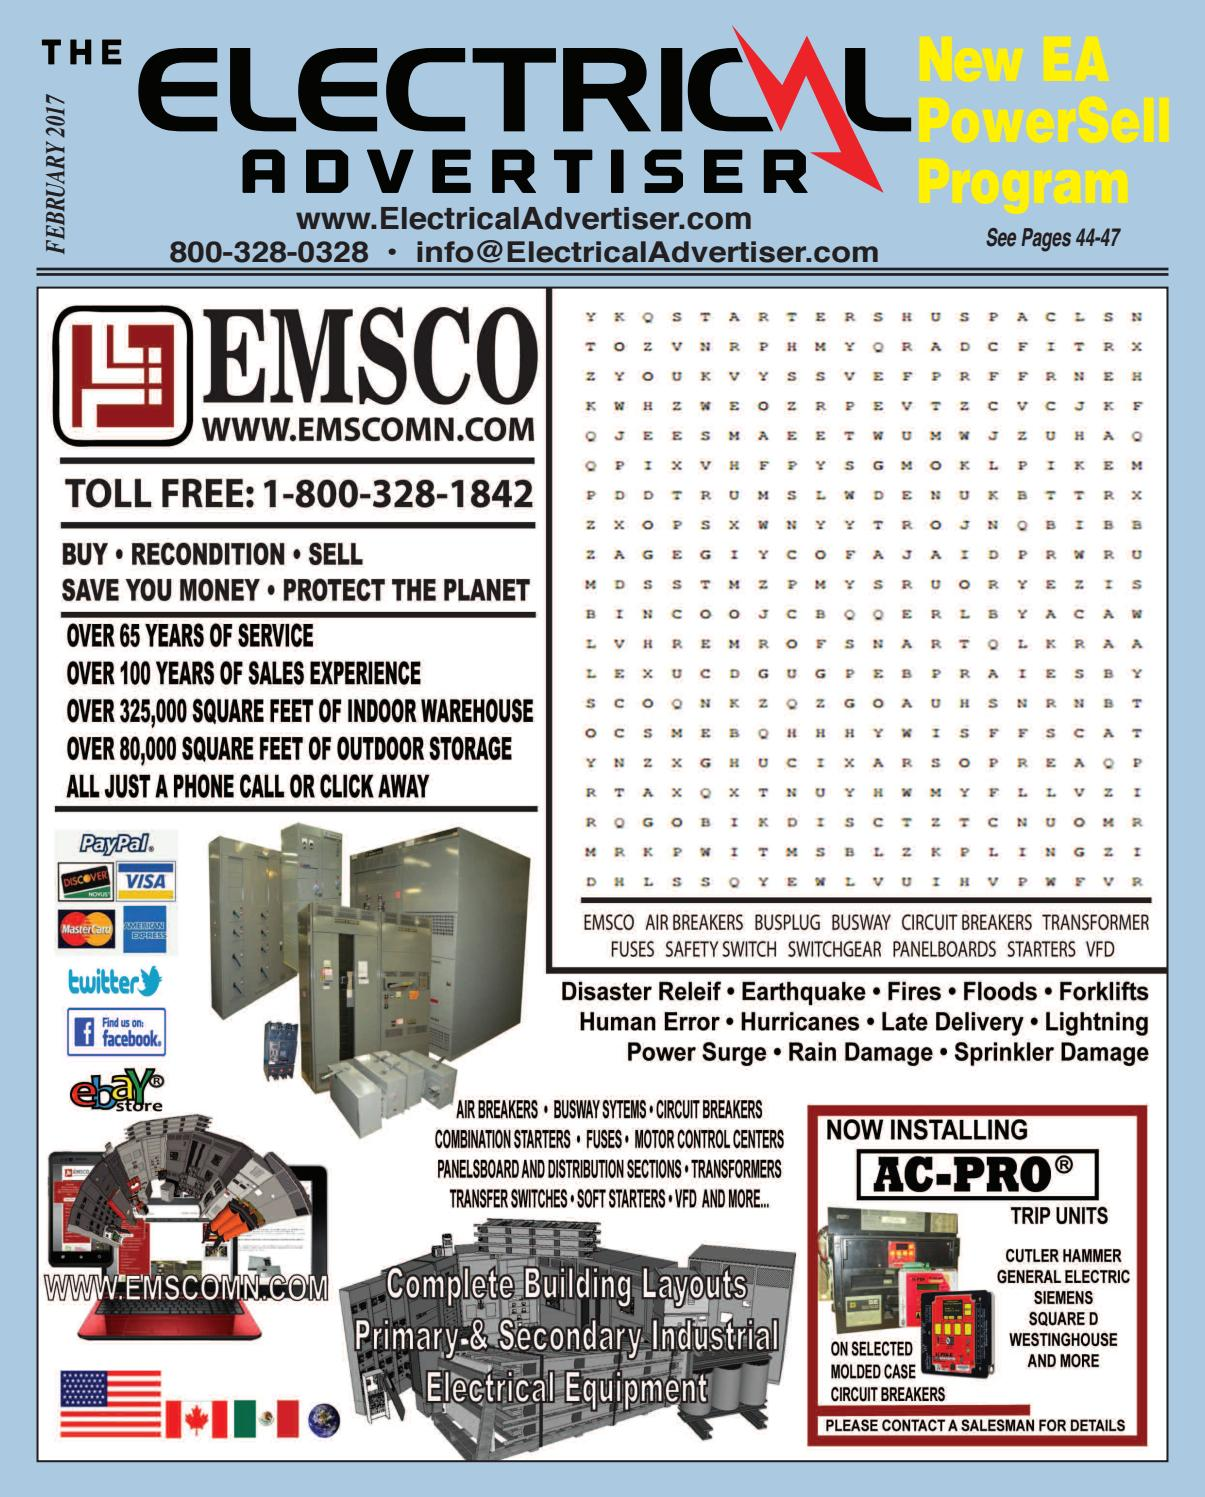 Electrical Advertiser February 2017 by Electrical Advertiser - issuu